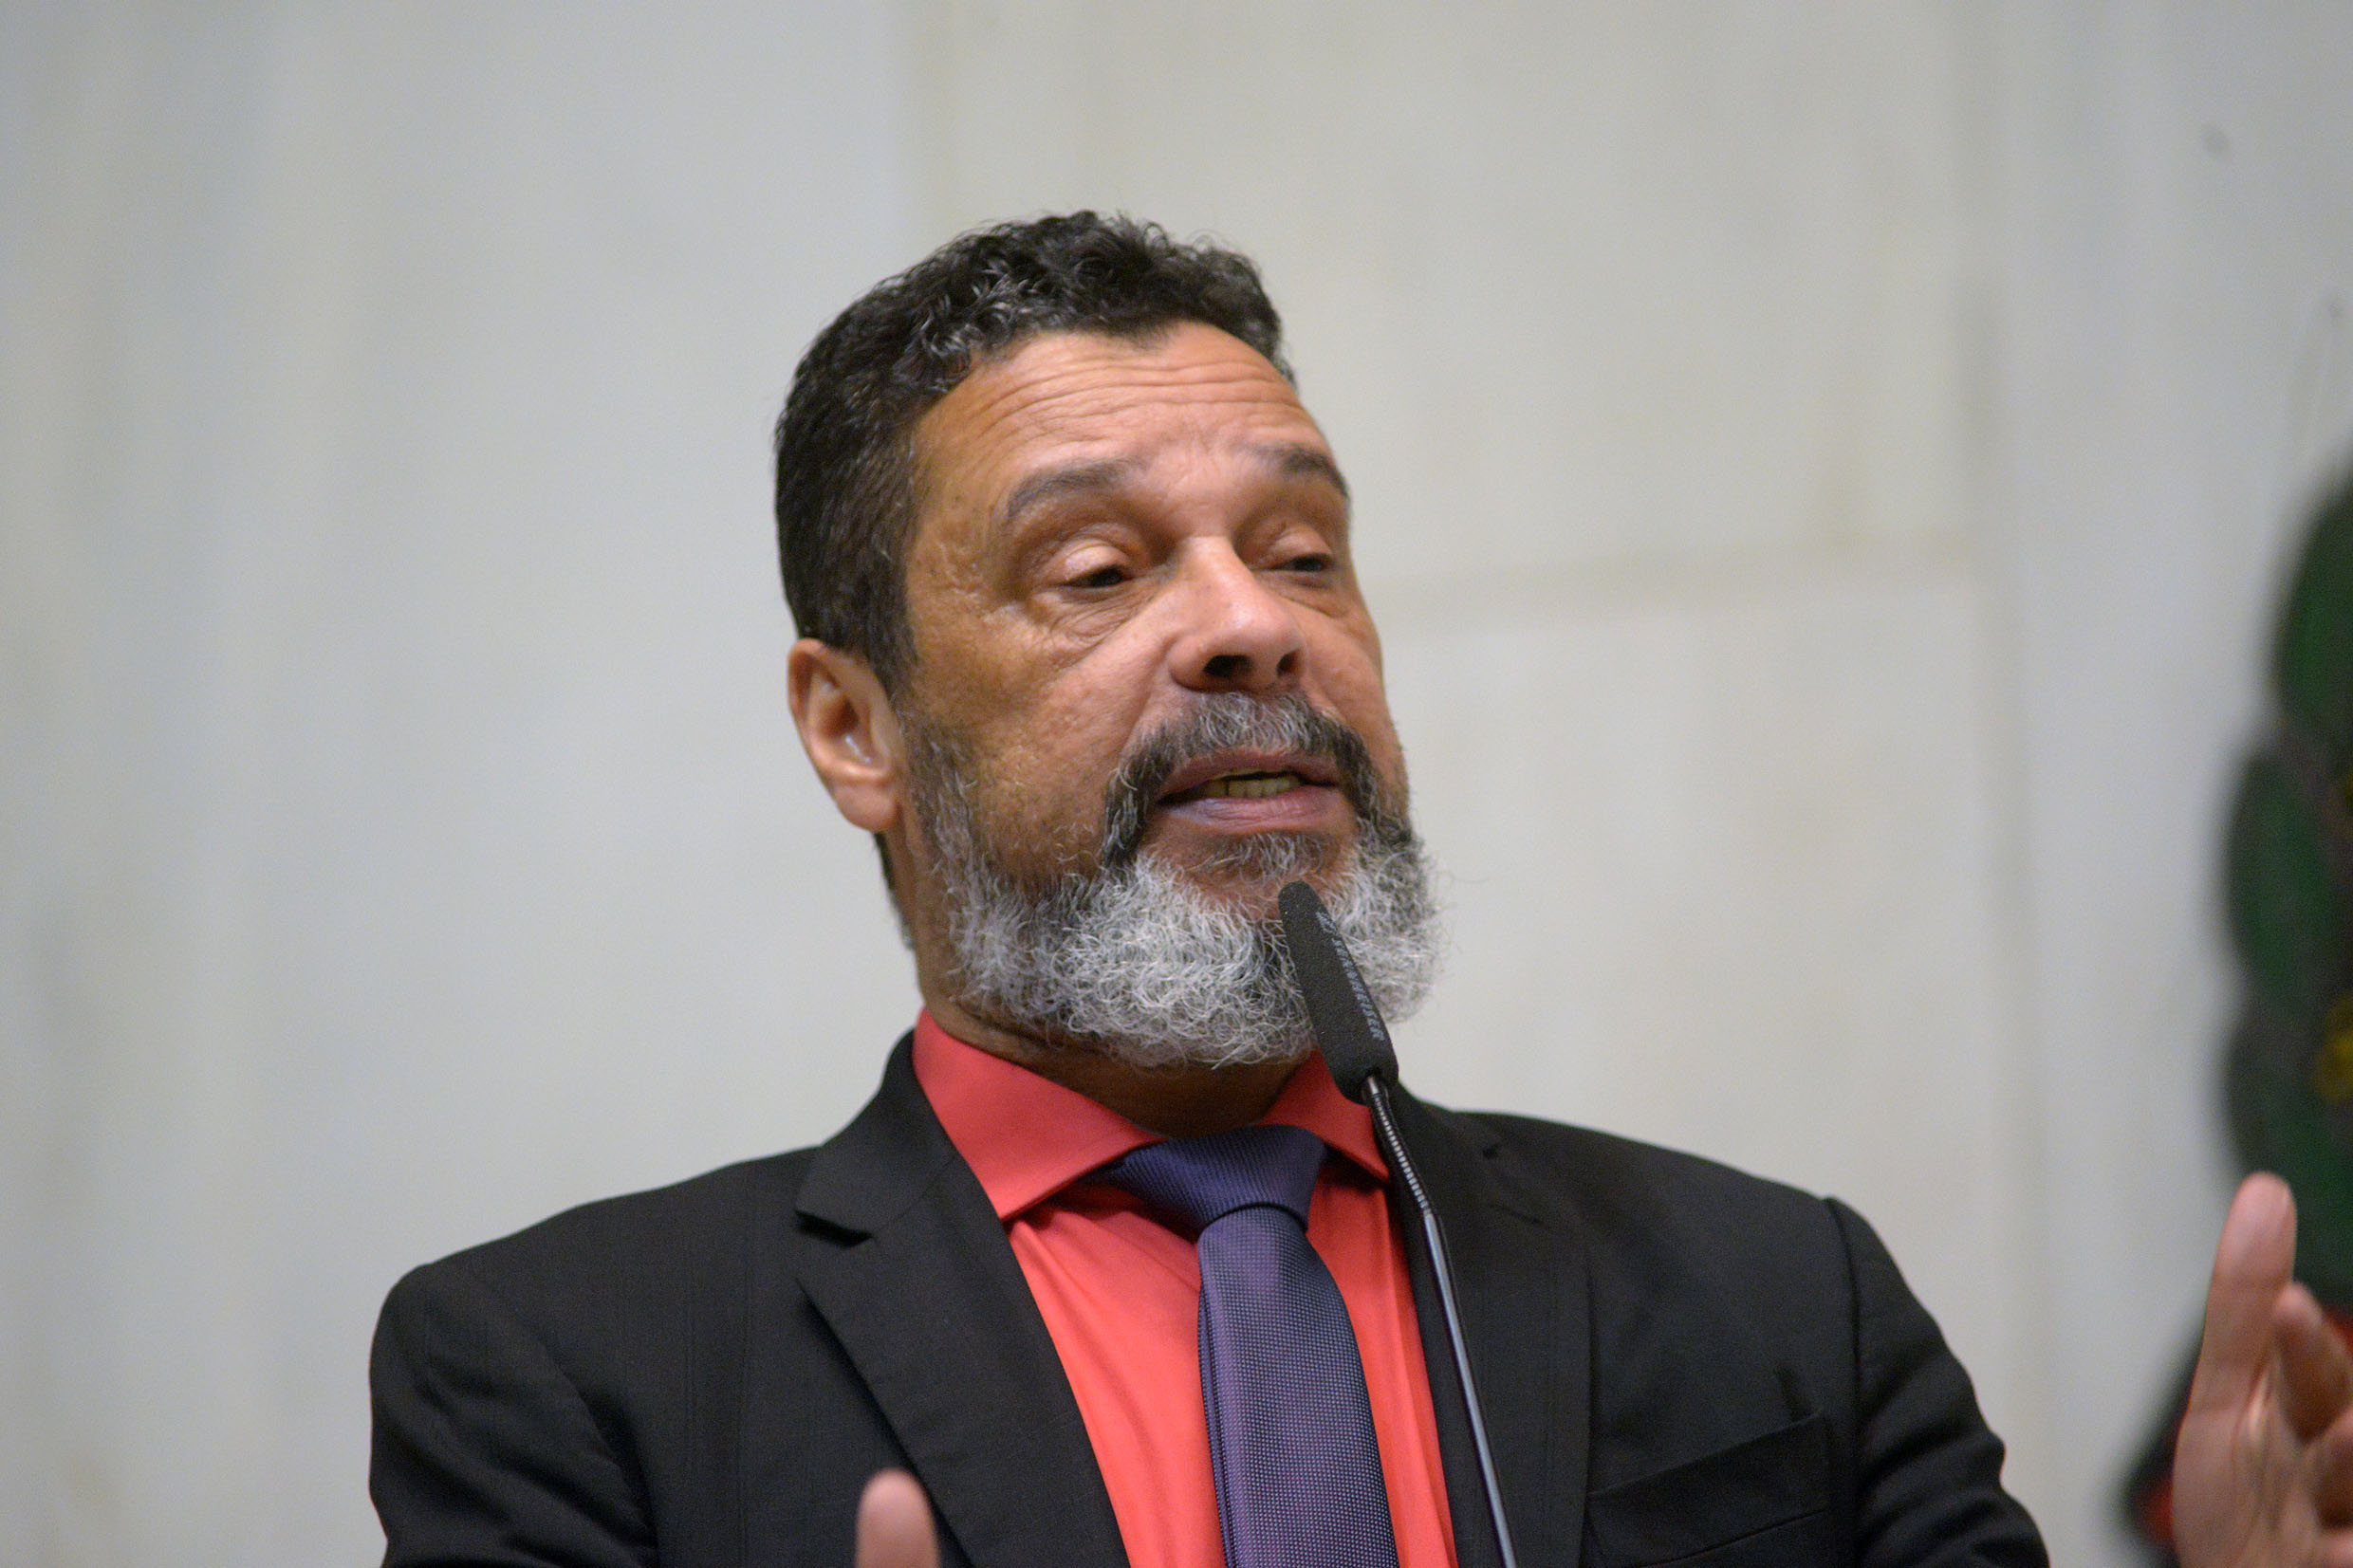 Teonilio Barba<a style='float:right' href='https://www3.al.sp.gov.br/repositorio/noticia/N-09-2019/fg239727.jpg' target=_blank><img src='/_img/material-file-download-white.png' width='14px' alt='Clique para baixar a imagem'></a>